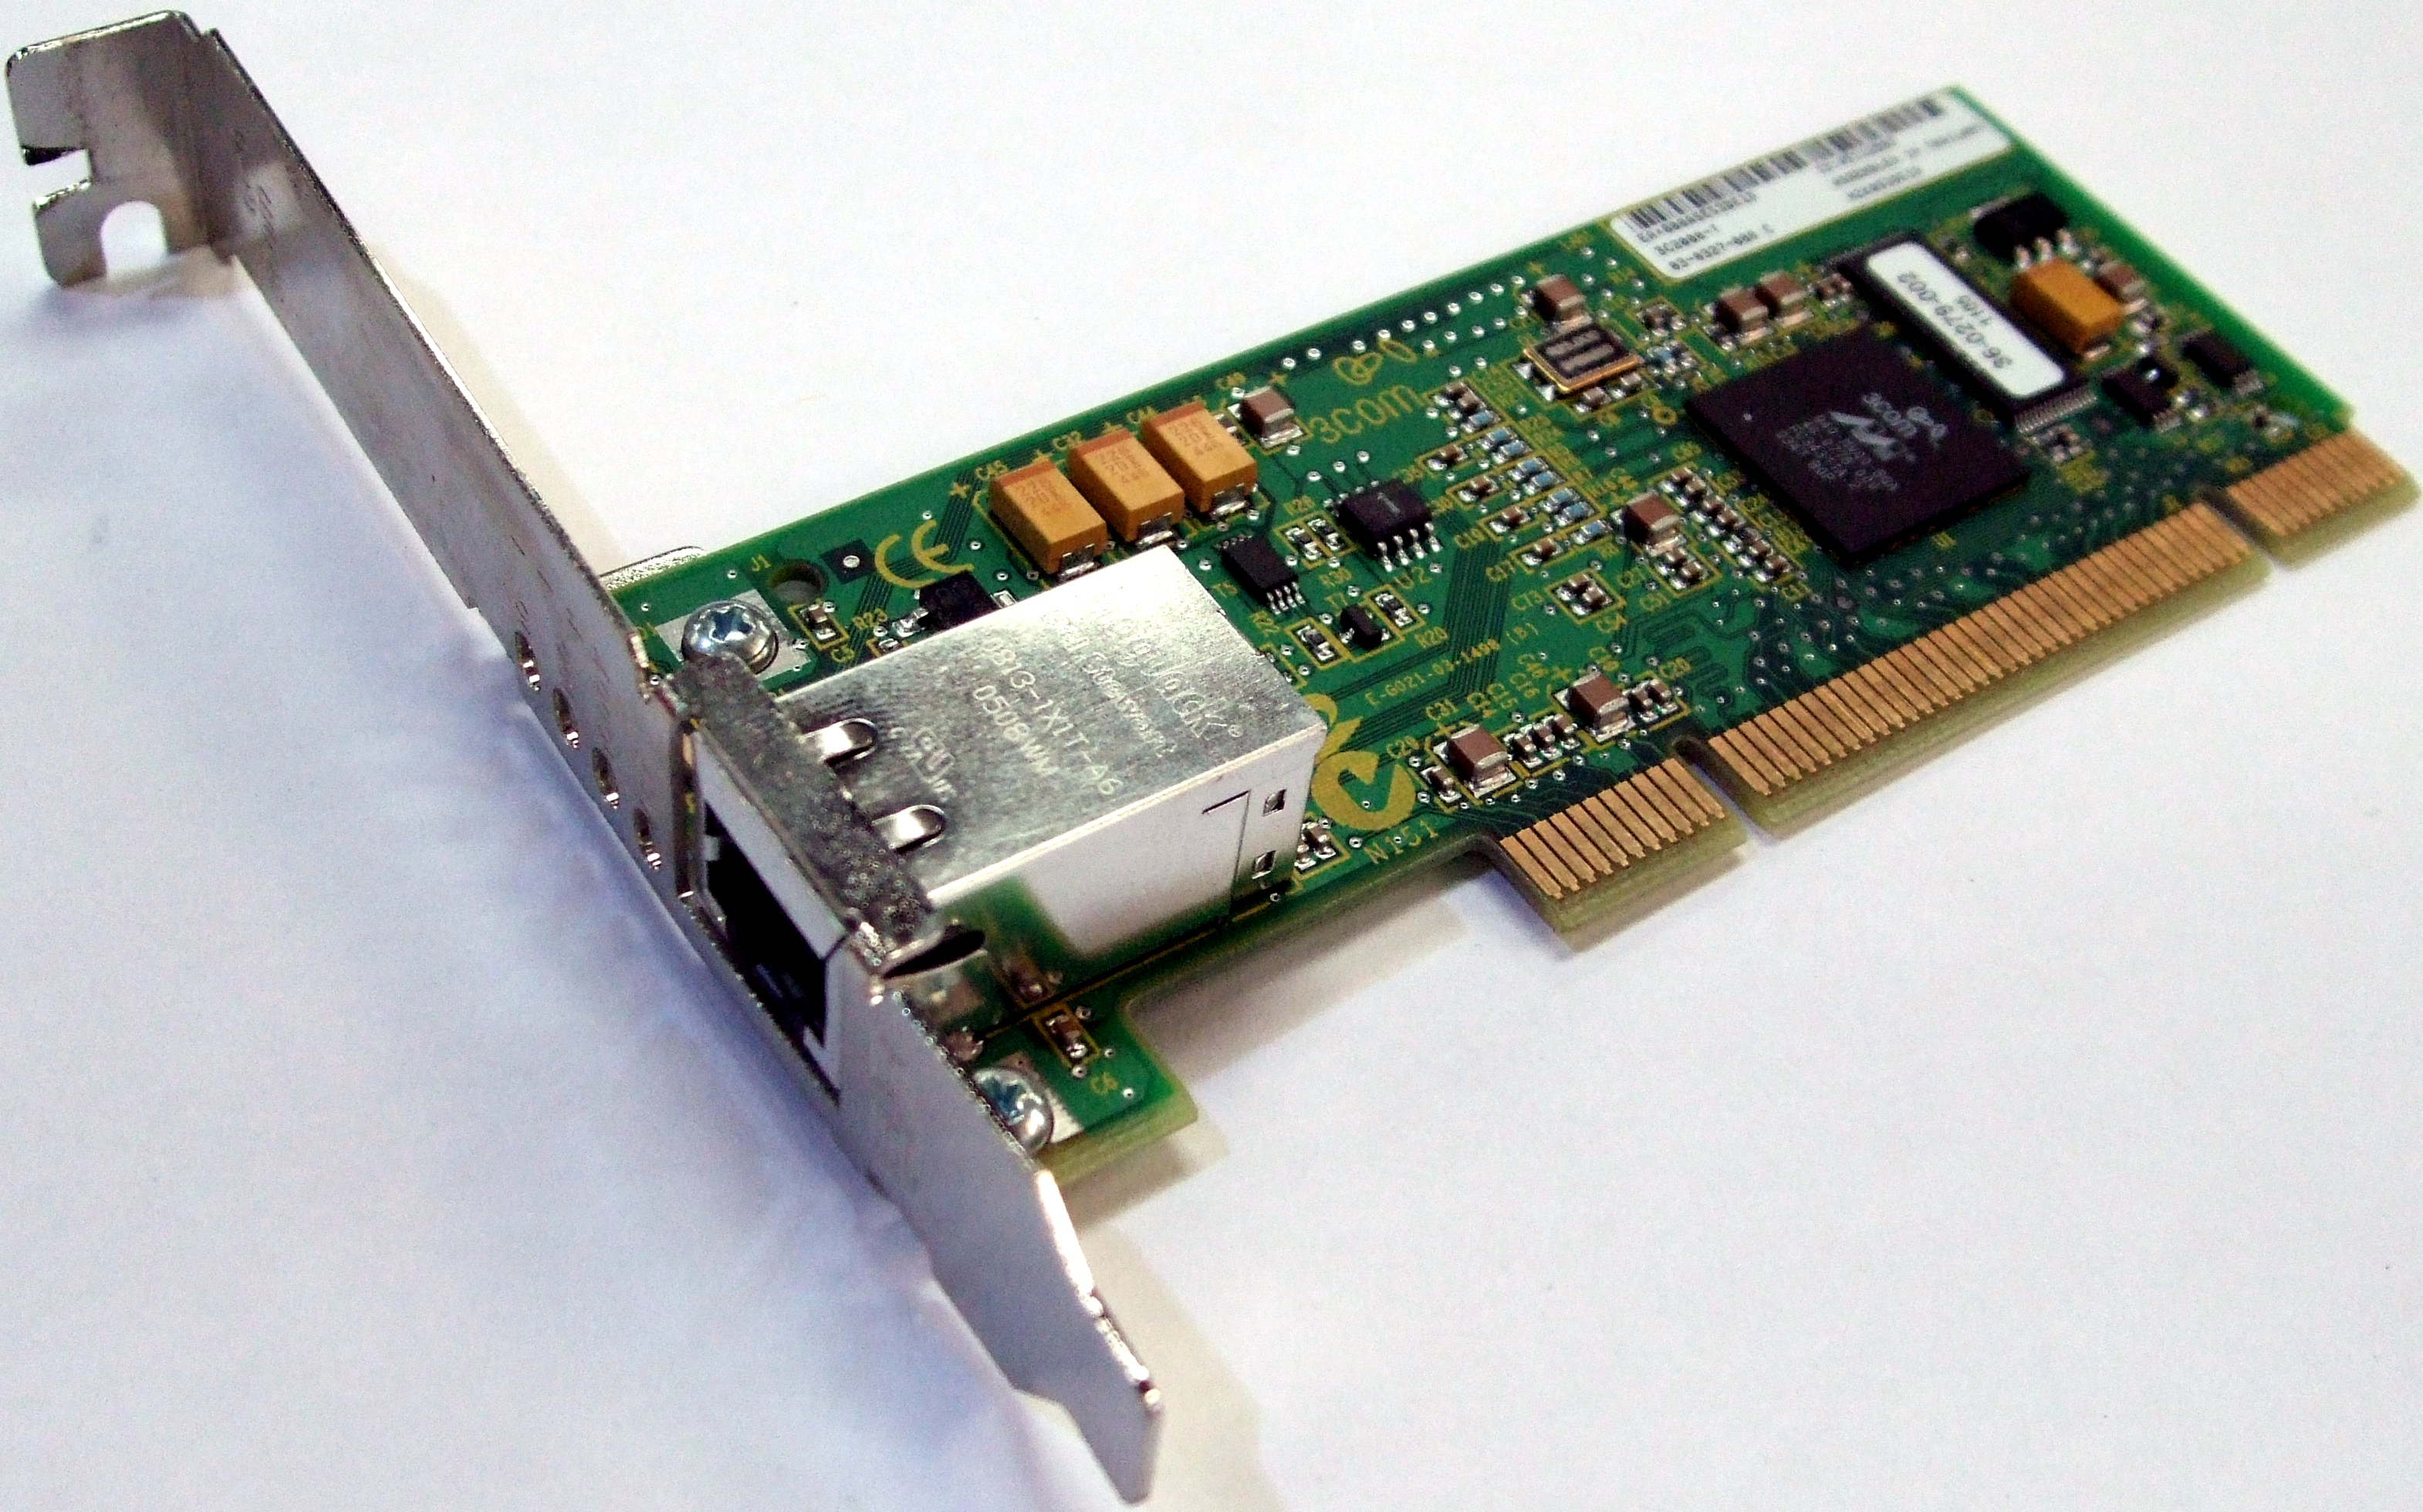 3COM 3C905C-TX-M 10/100 PCI NETWORKING CARD (3C905CTXM)